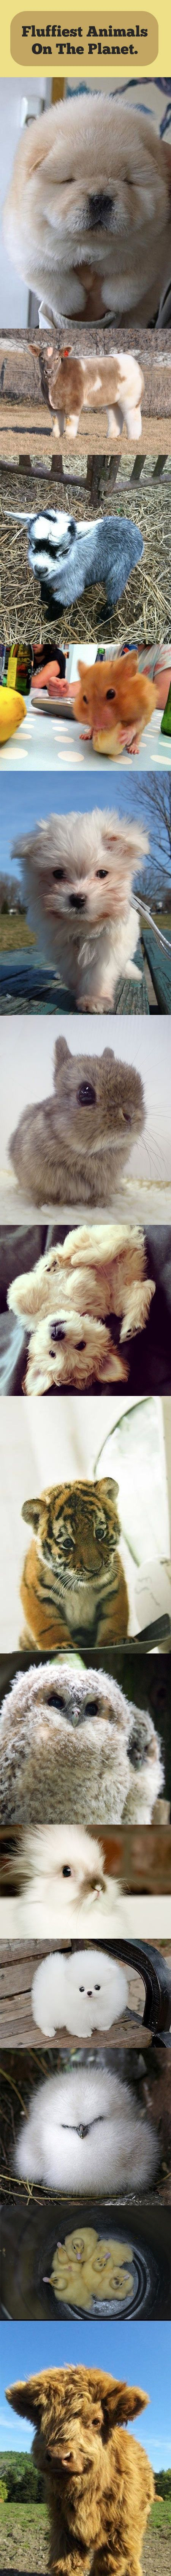 Too much fluffiness… The fluffiest animals on the planet. My dog should be on here.